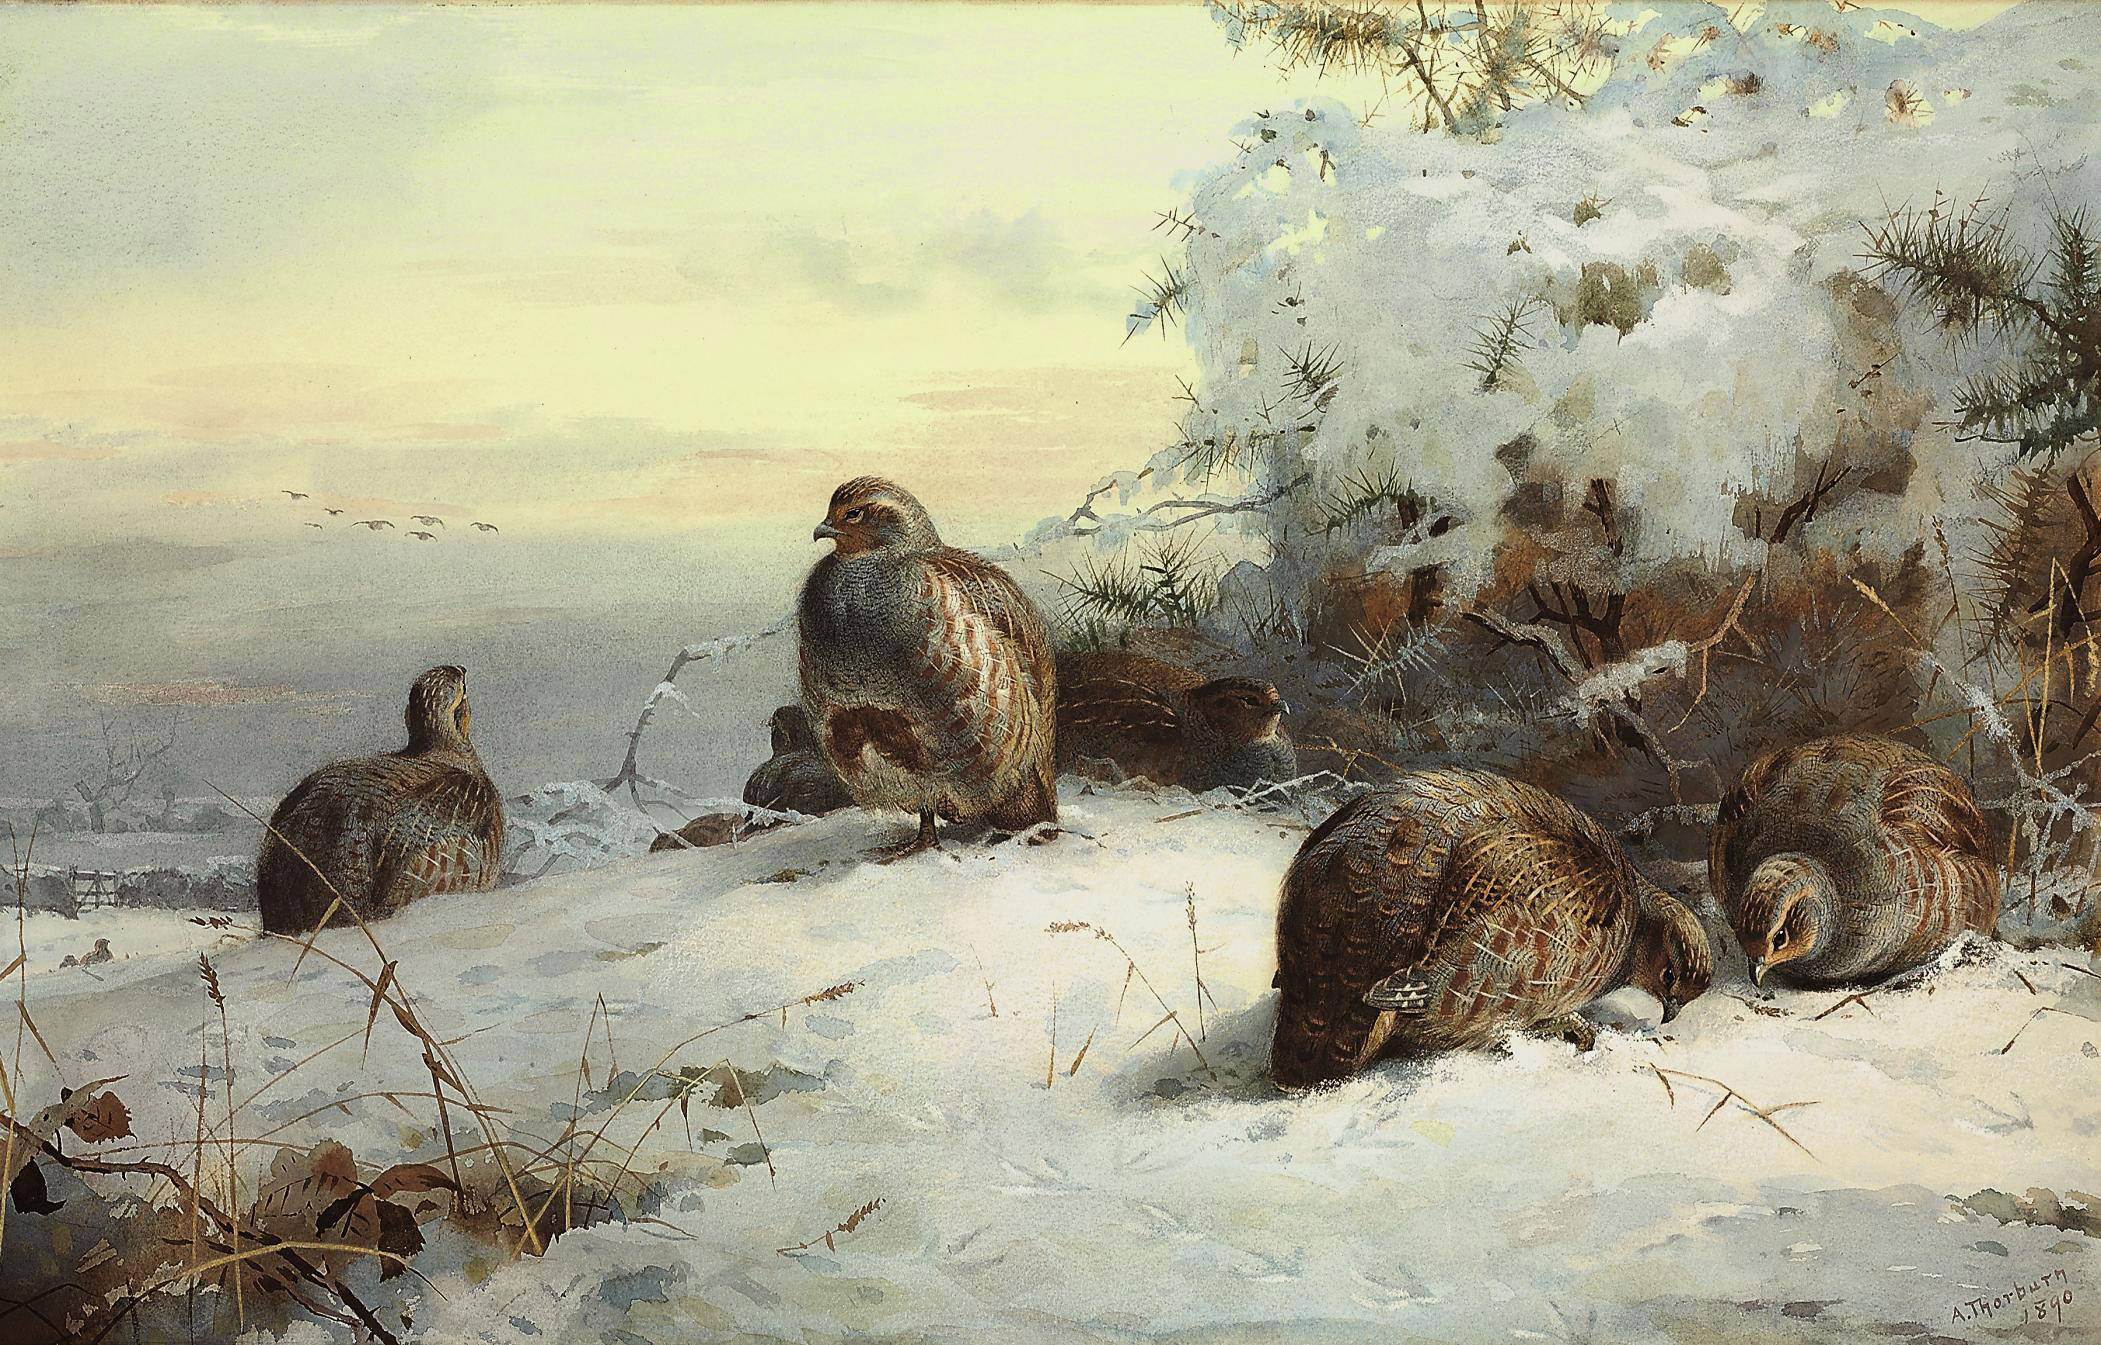 A covey of grey partridge in a snow-bound landscape, resting beneath gorse